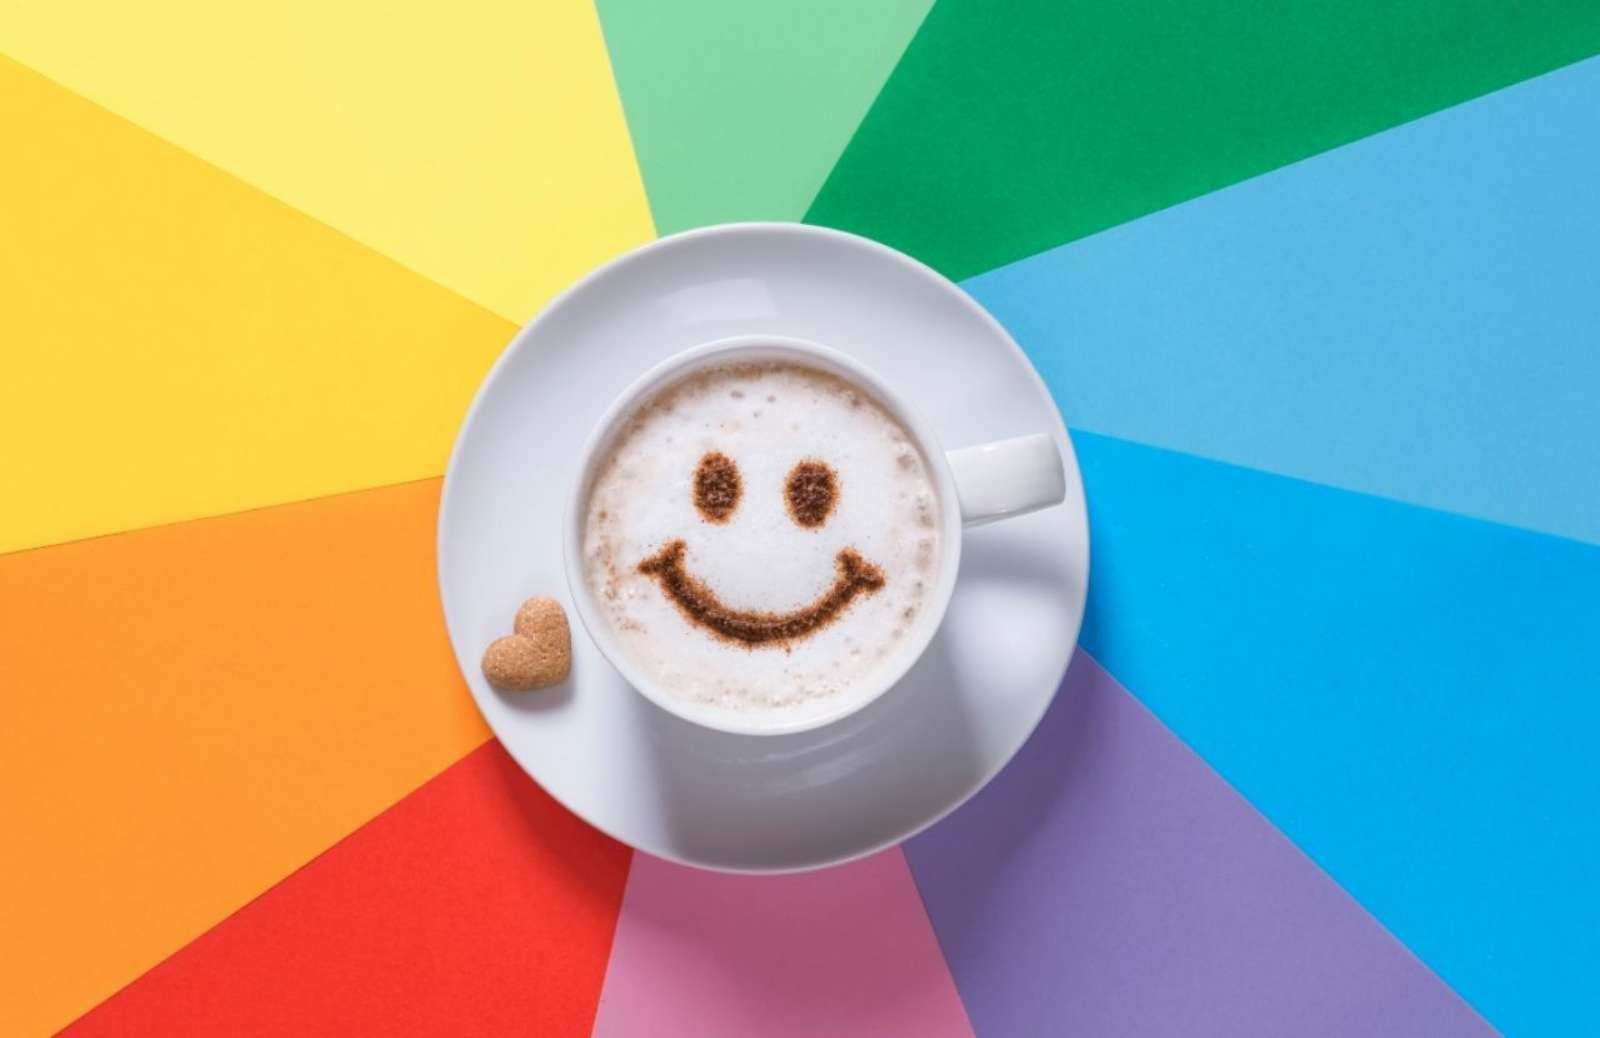 A cup of coffee with a smiley face dusted on top sits on a rainbow background